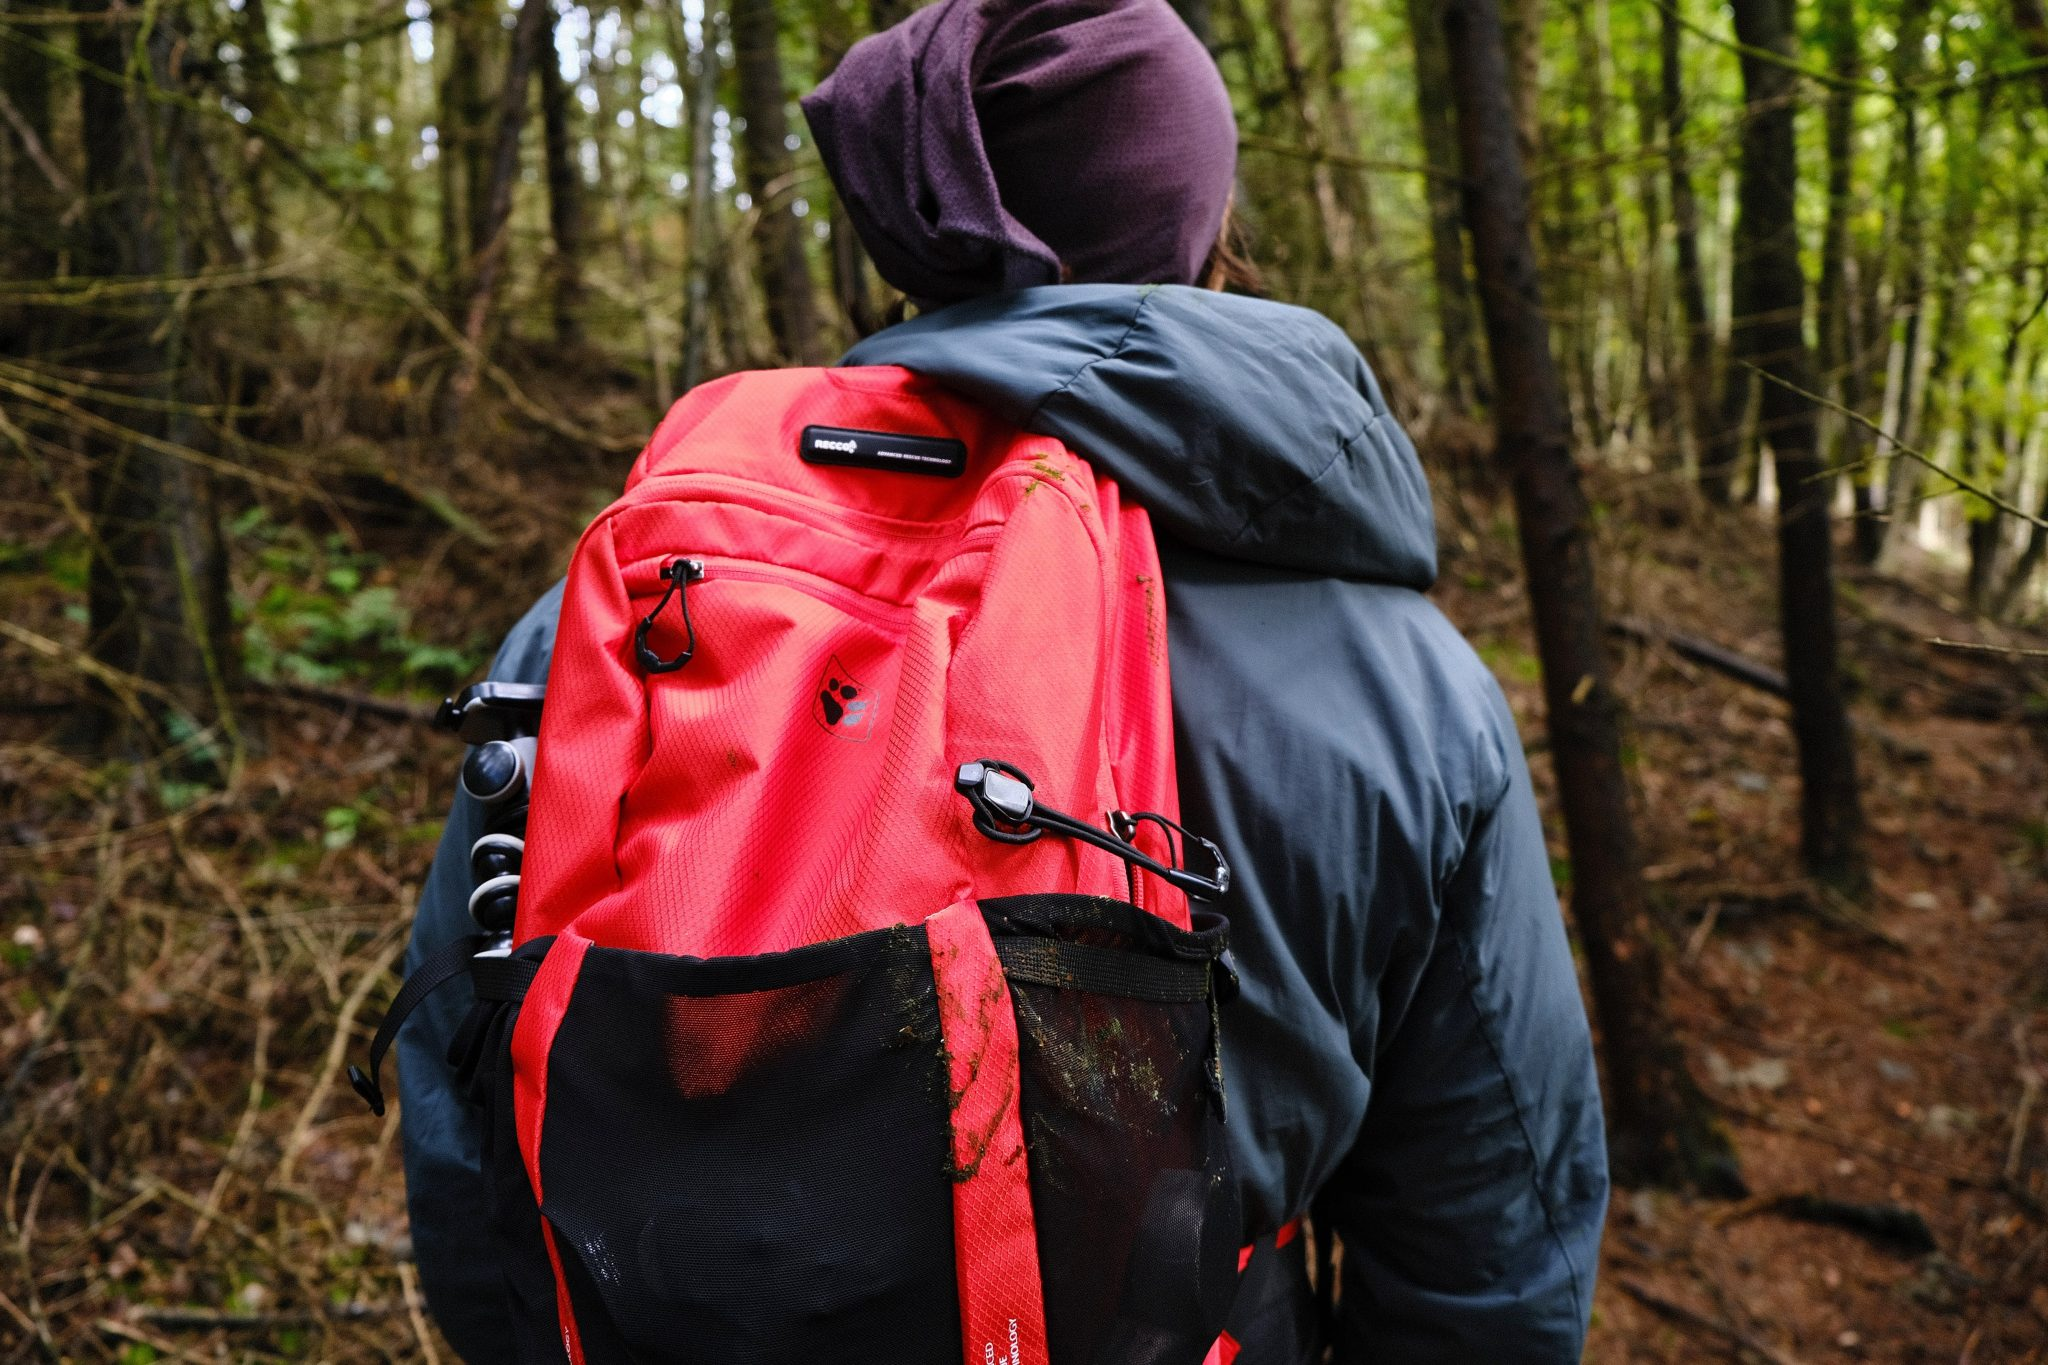 Man wearing wering vegan coat and sustainable rucksack in woods